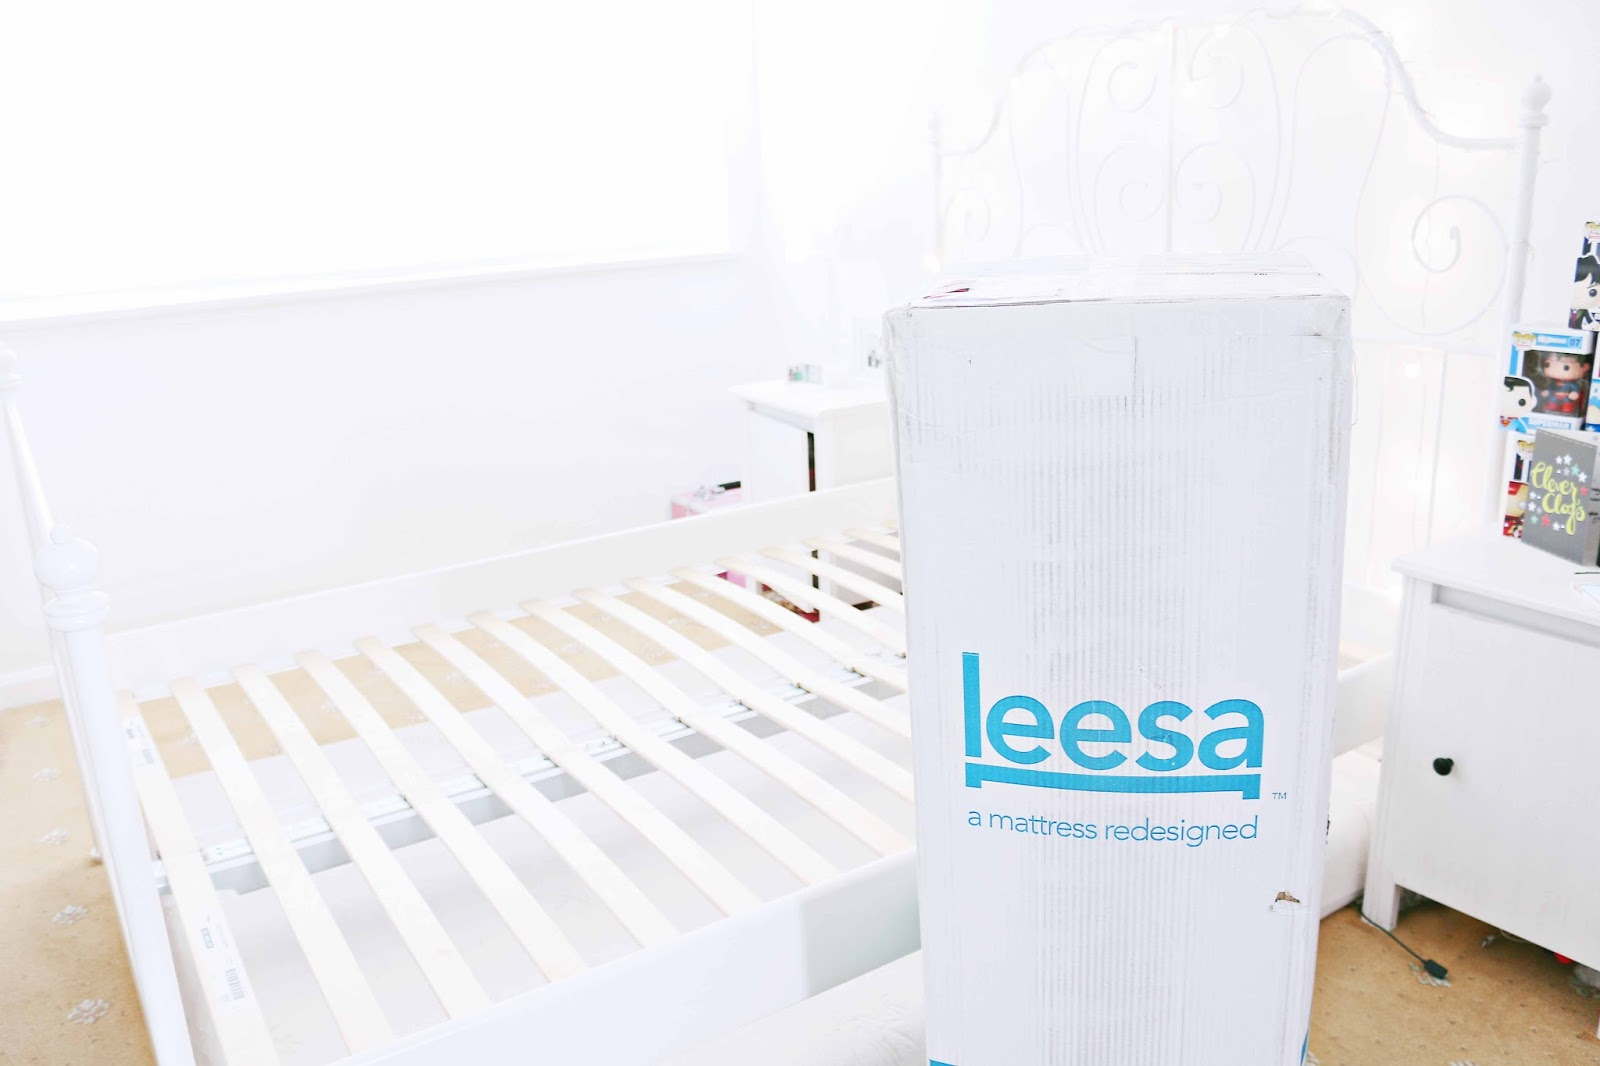 Lifestyle, sleep, Sleeping, Ways to switch off, ways to get a better night sleep, Leesa Mattress, Mattress, Leesa, Bed, How to get to sleep